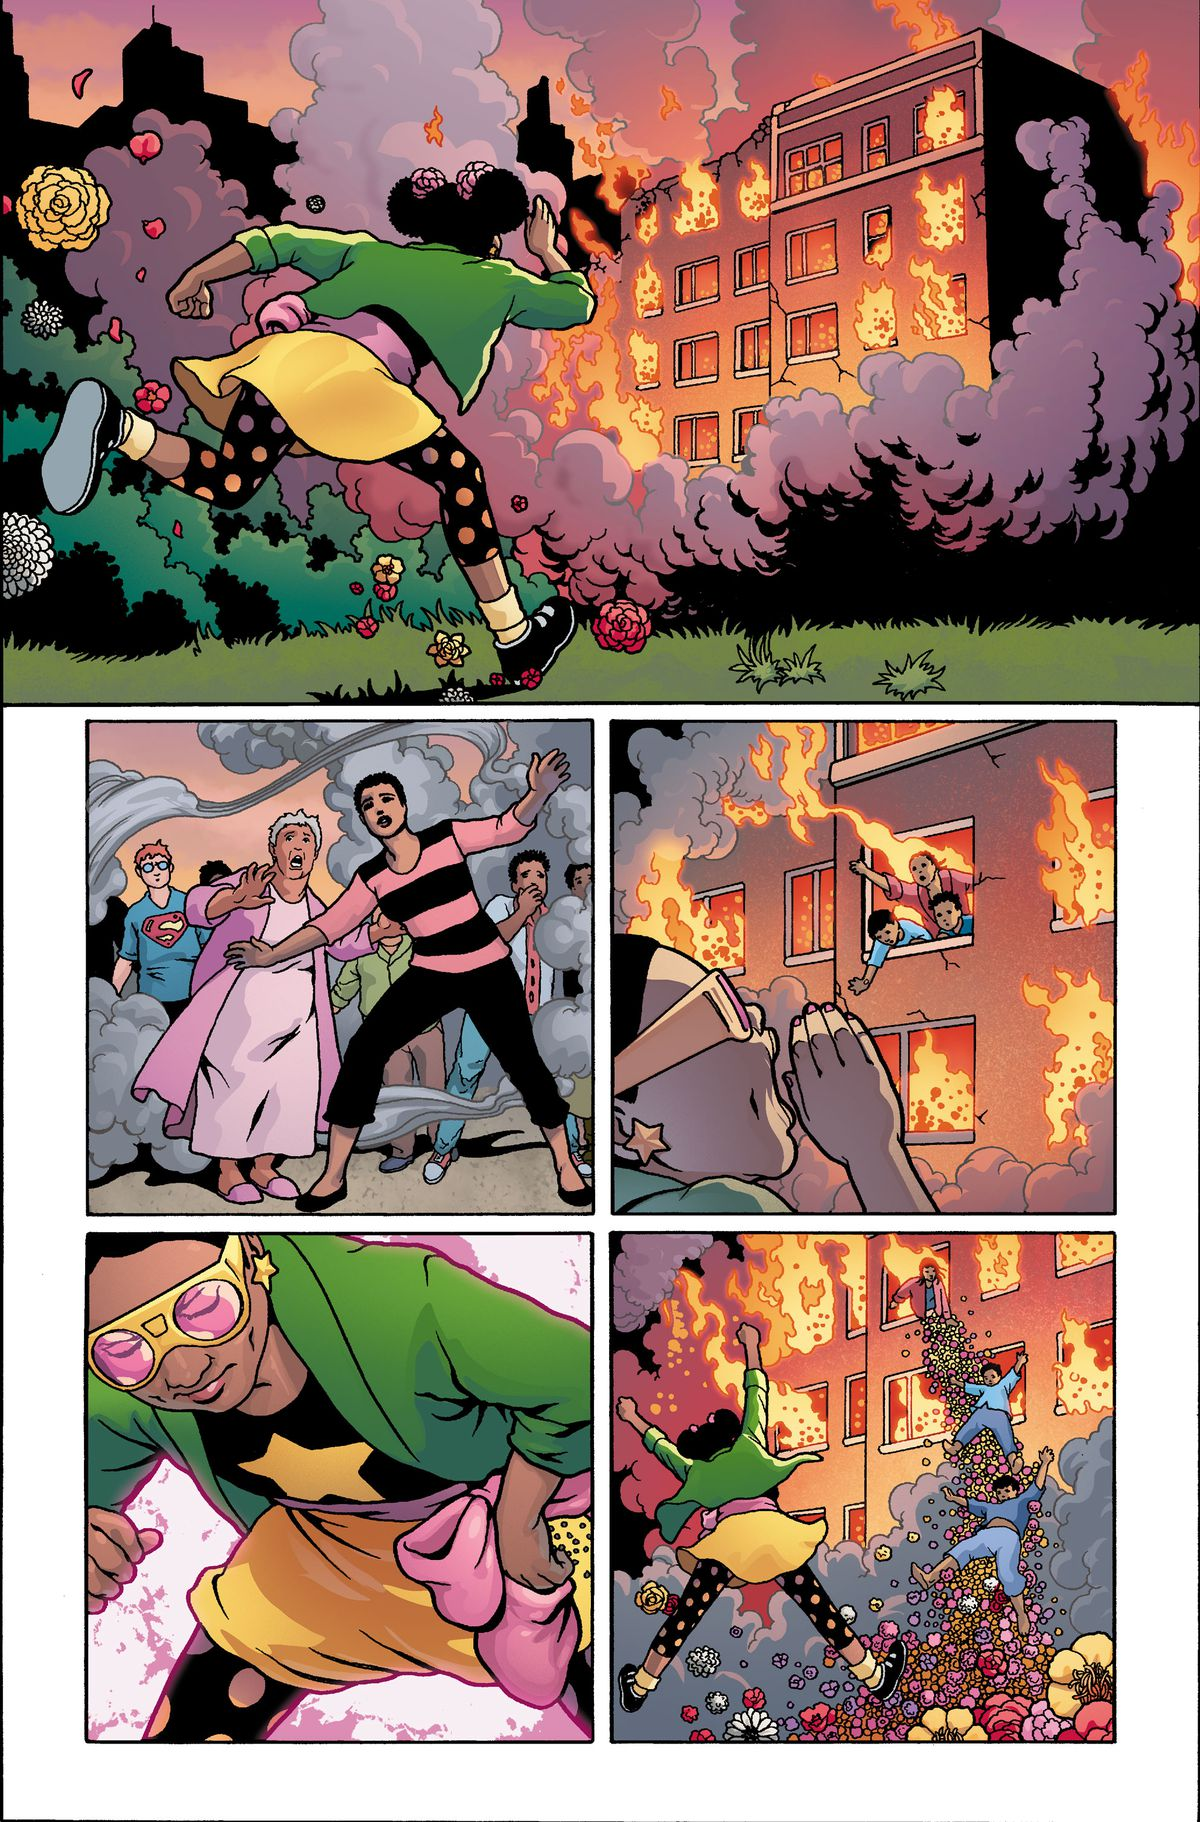 Star-Blossom, the pre-teen flower superhero, saves people from a burning building with a slide of flowers, in unfinished art from Wonder Woman #750, DC Comics (2020).